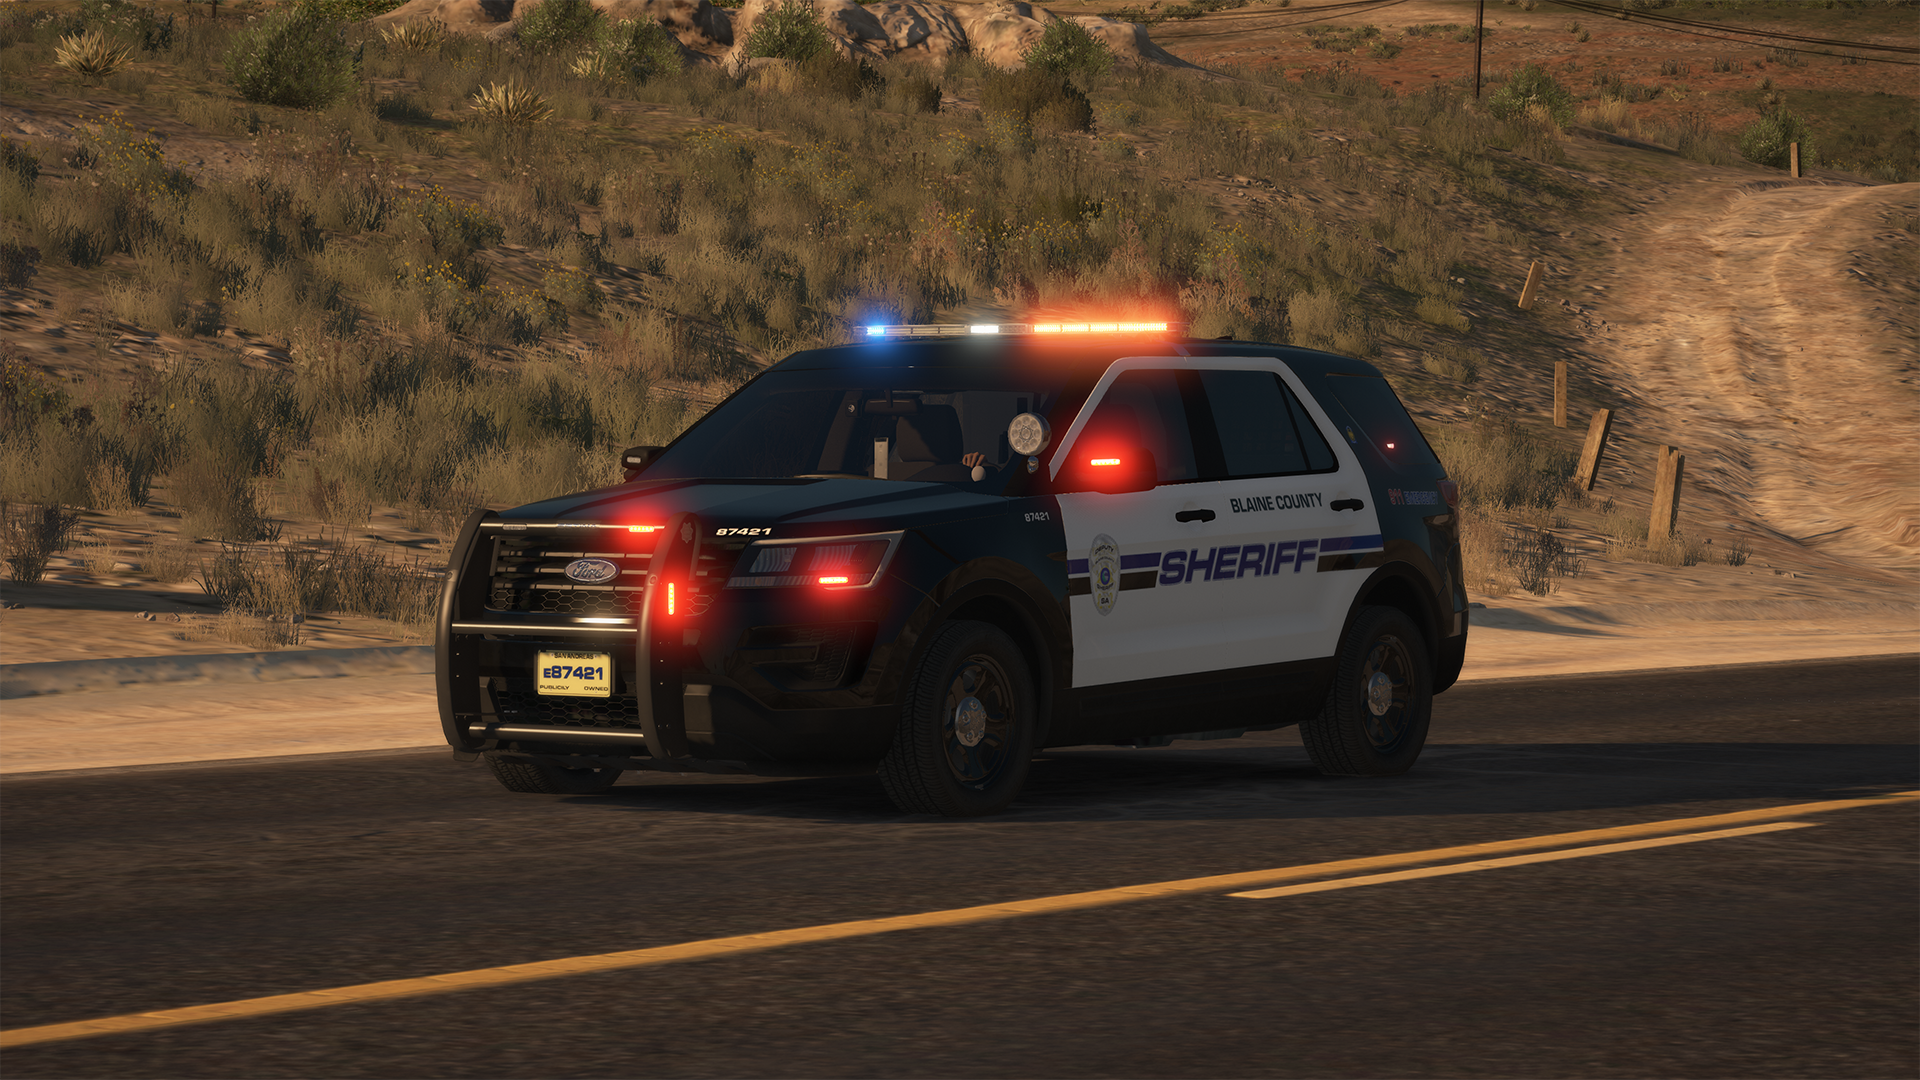 Grand_Theft_Auto_V_7_6_2020_1_05_36_AM.png.b5f31f3518b8163b32ff9bf4e3ae1a50.png